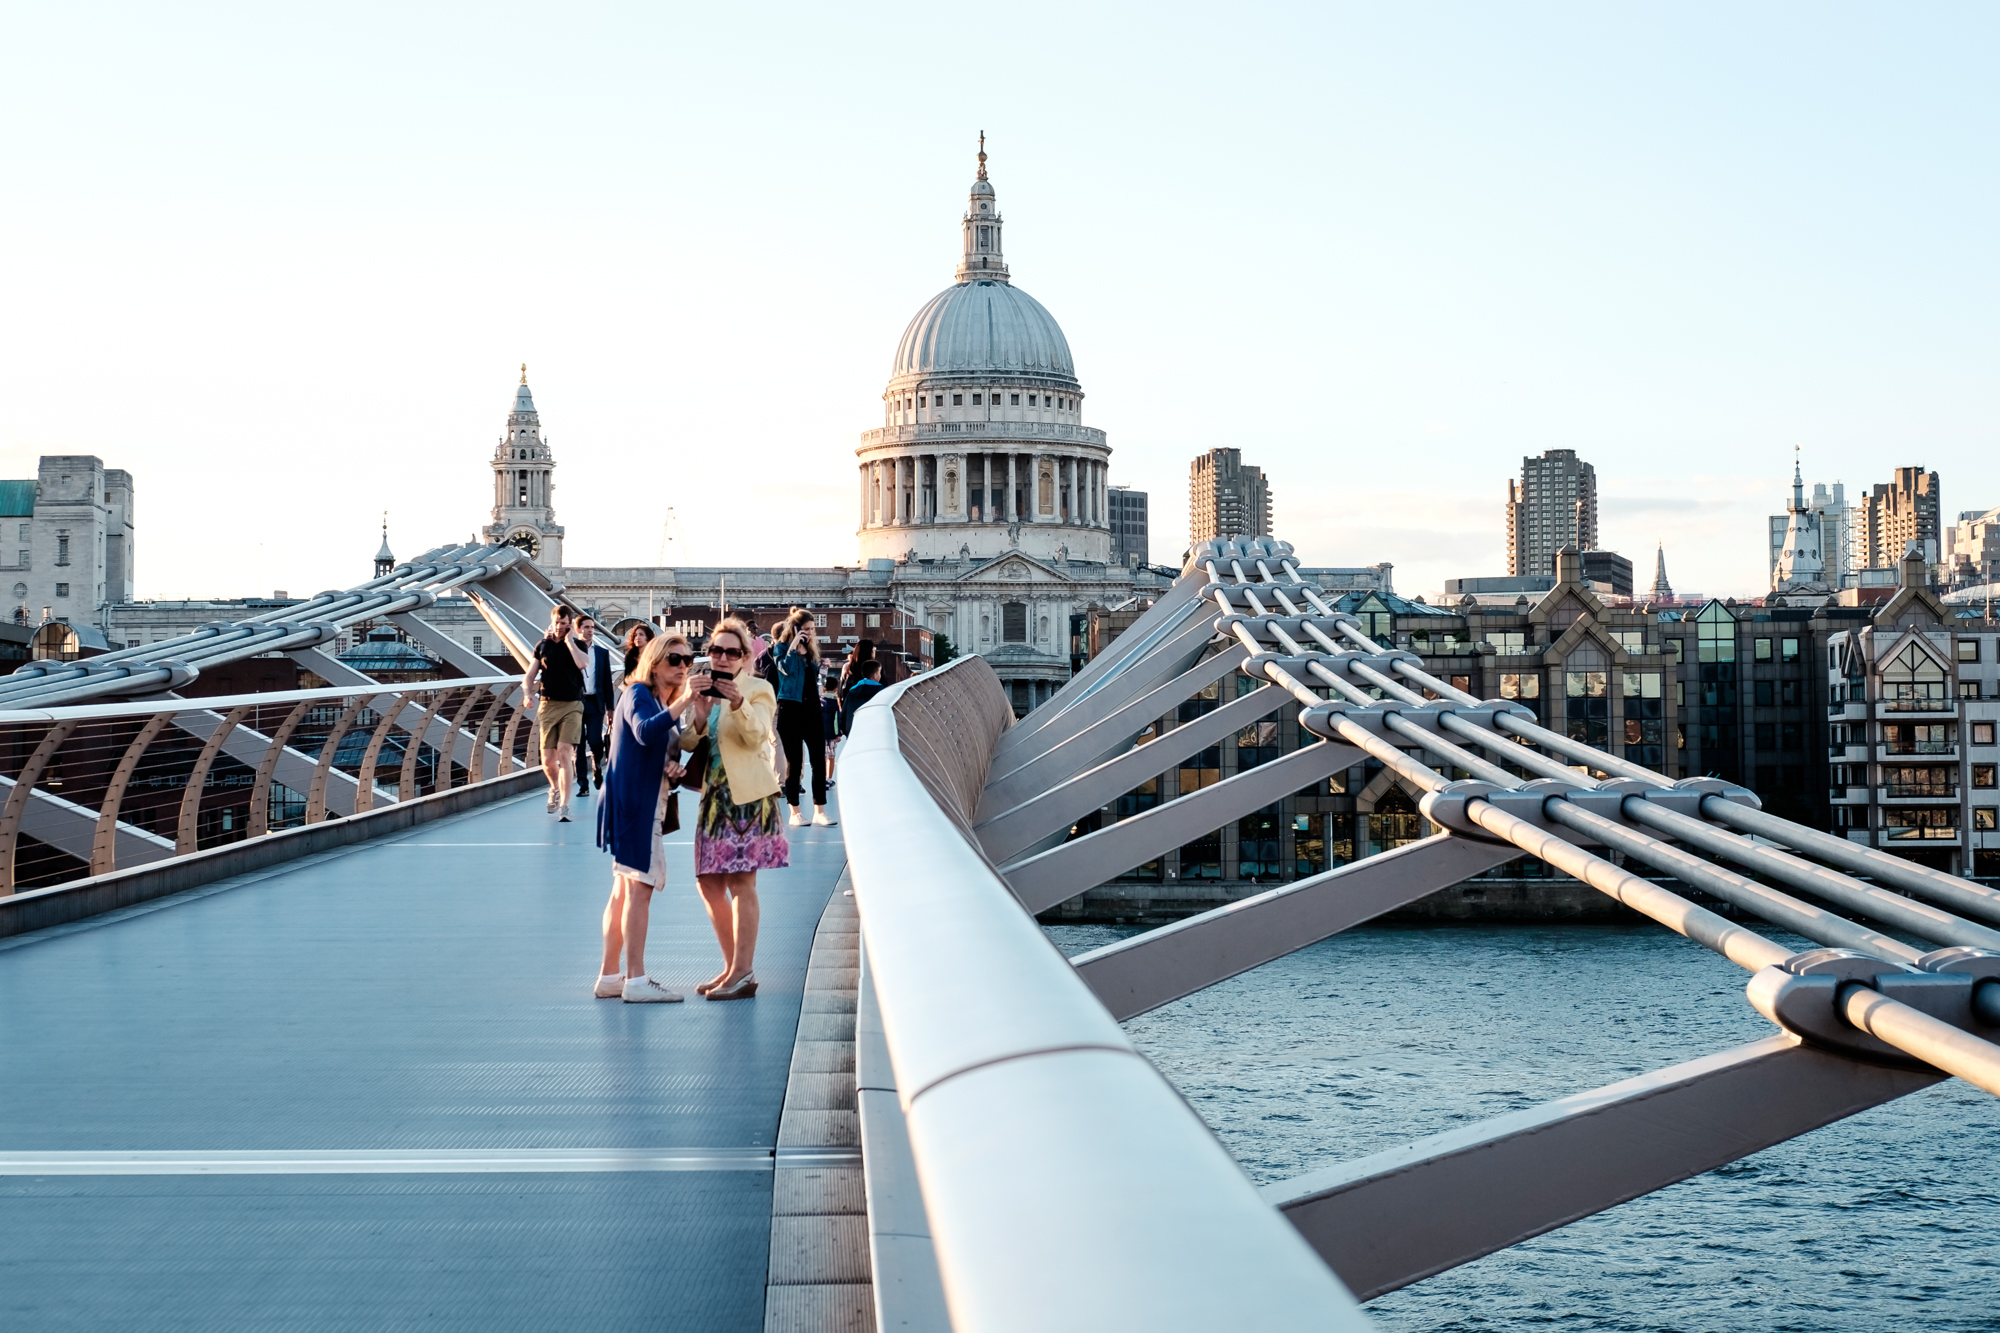 Street photo of tourists on the Millennium Bridge, London by Trevor Sherwin